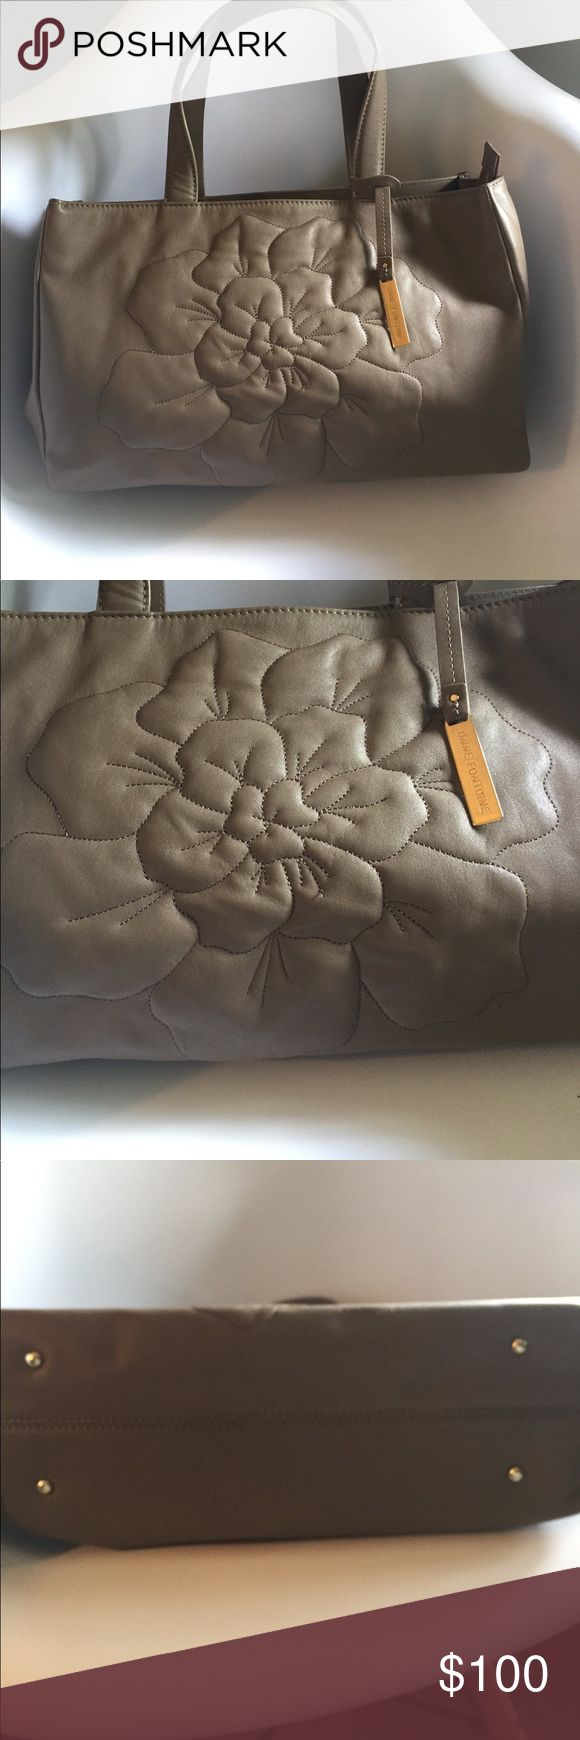 Anne Fontaine handbag Beautiful taupe handbag from French designer Anne Fontaine. 100% cow leather, gold hardware. Handbag feet and 2 key fobs. Perfect neutral handbag to add to your closet! anne fontaine Bags Totes